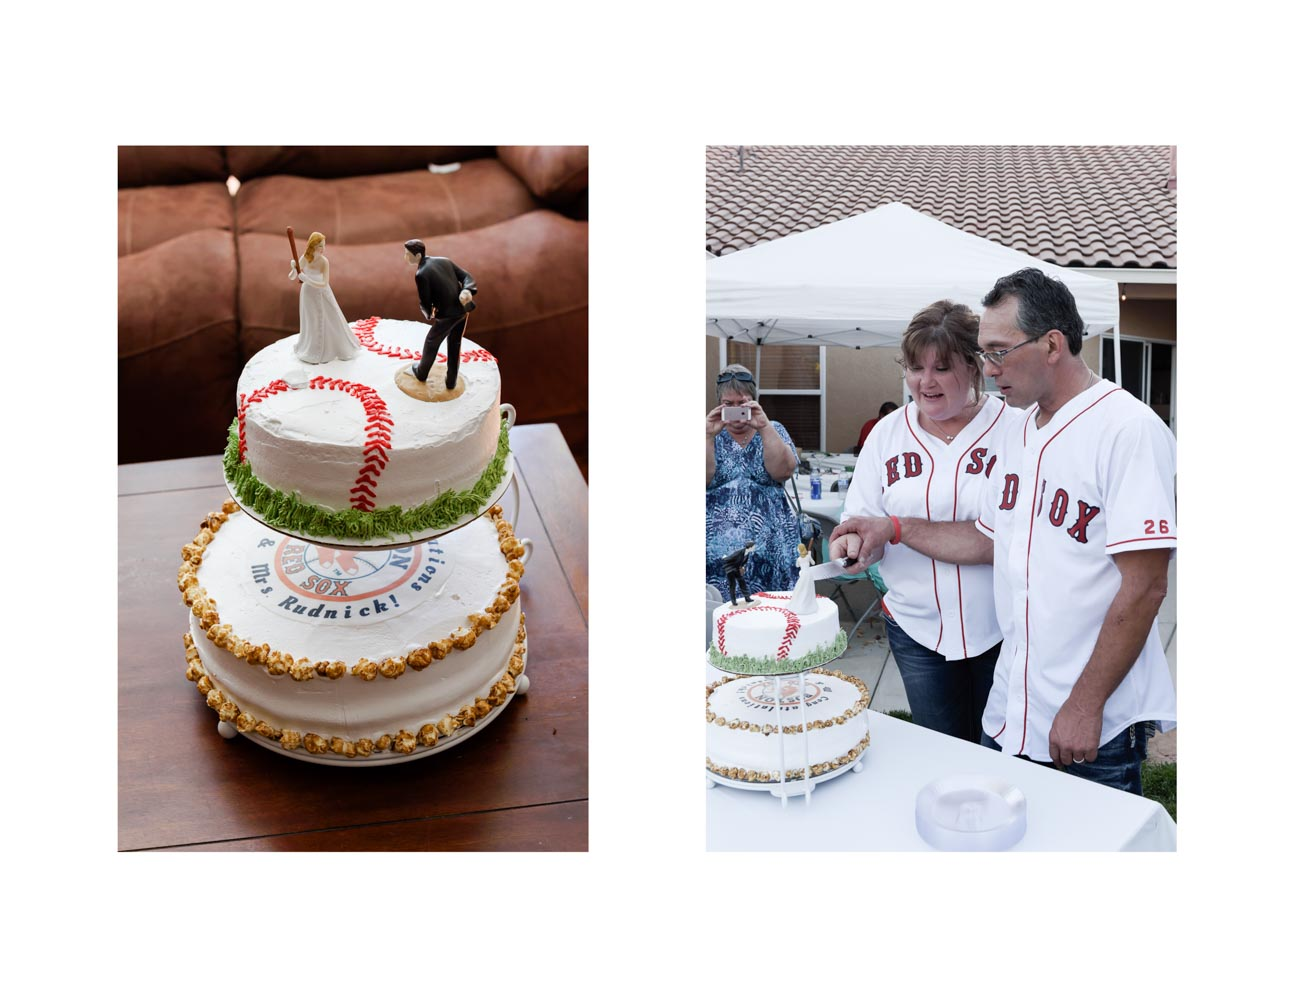 Two-photo collage of baseball-themed wedding cake